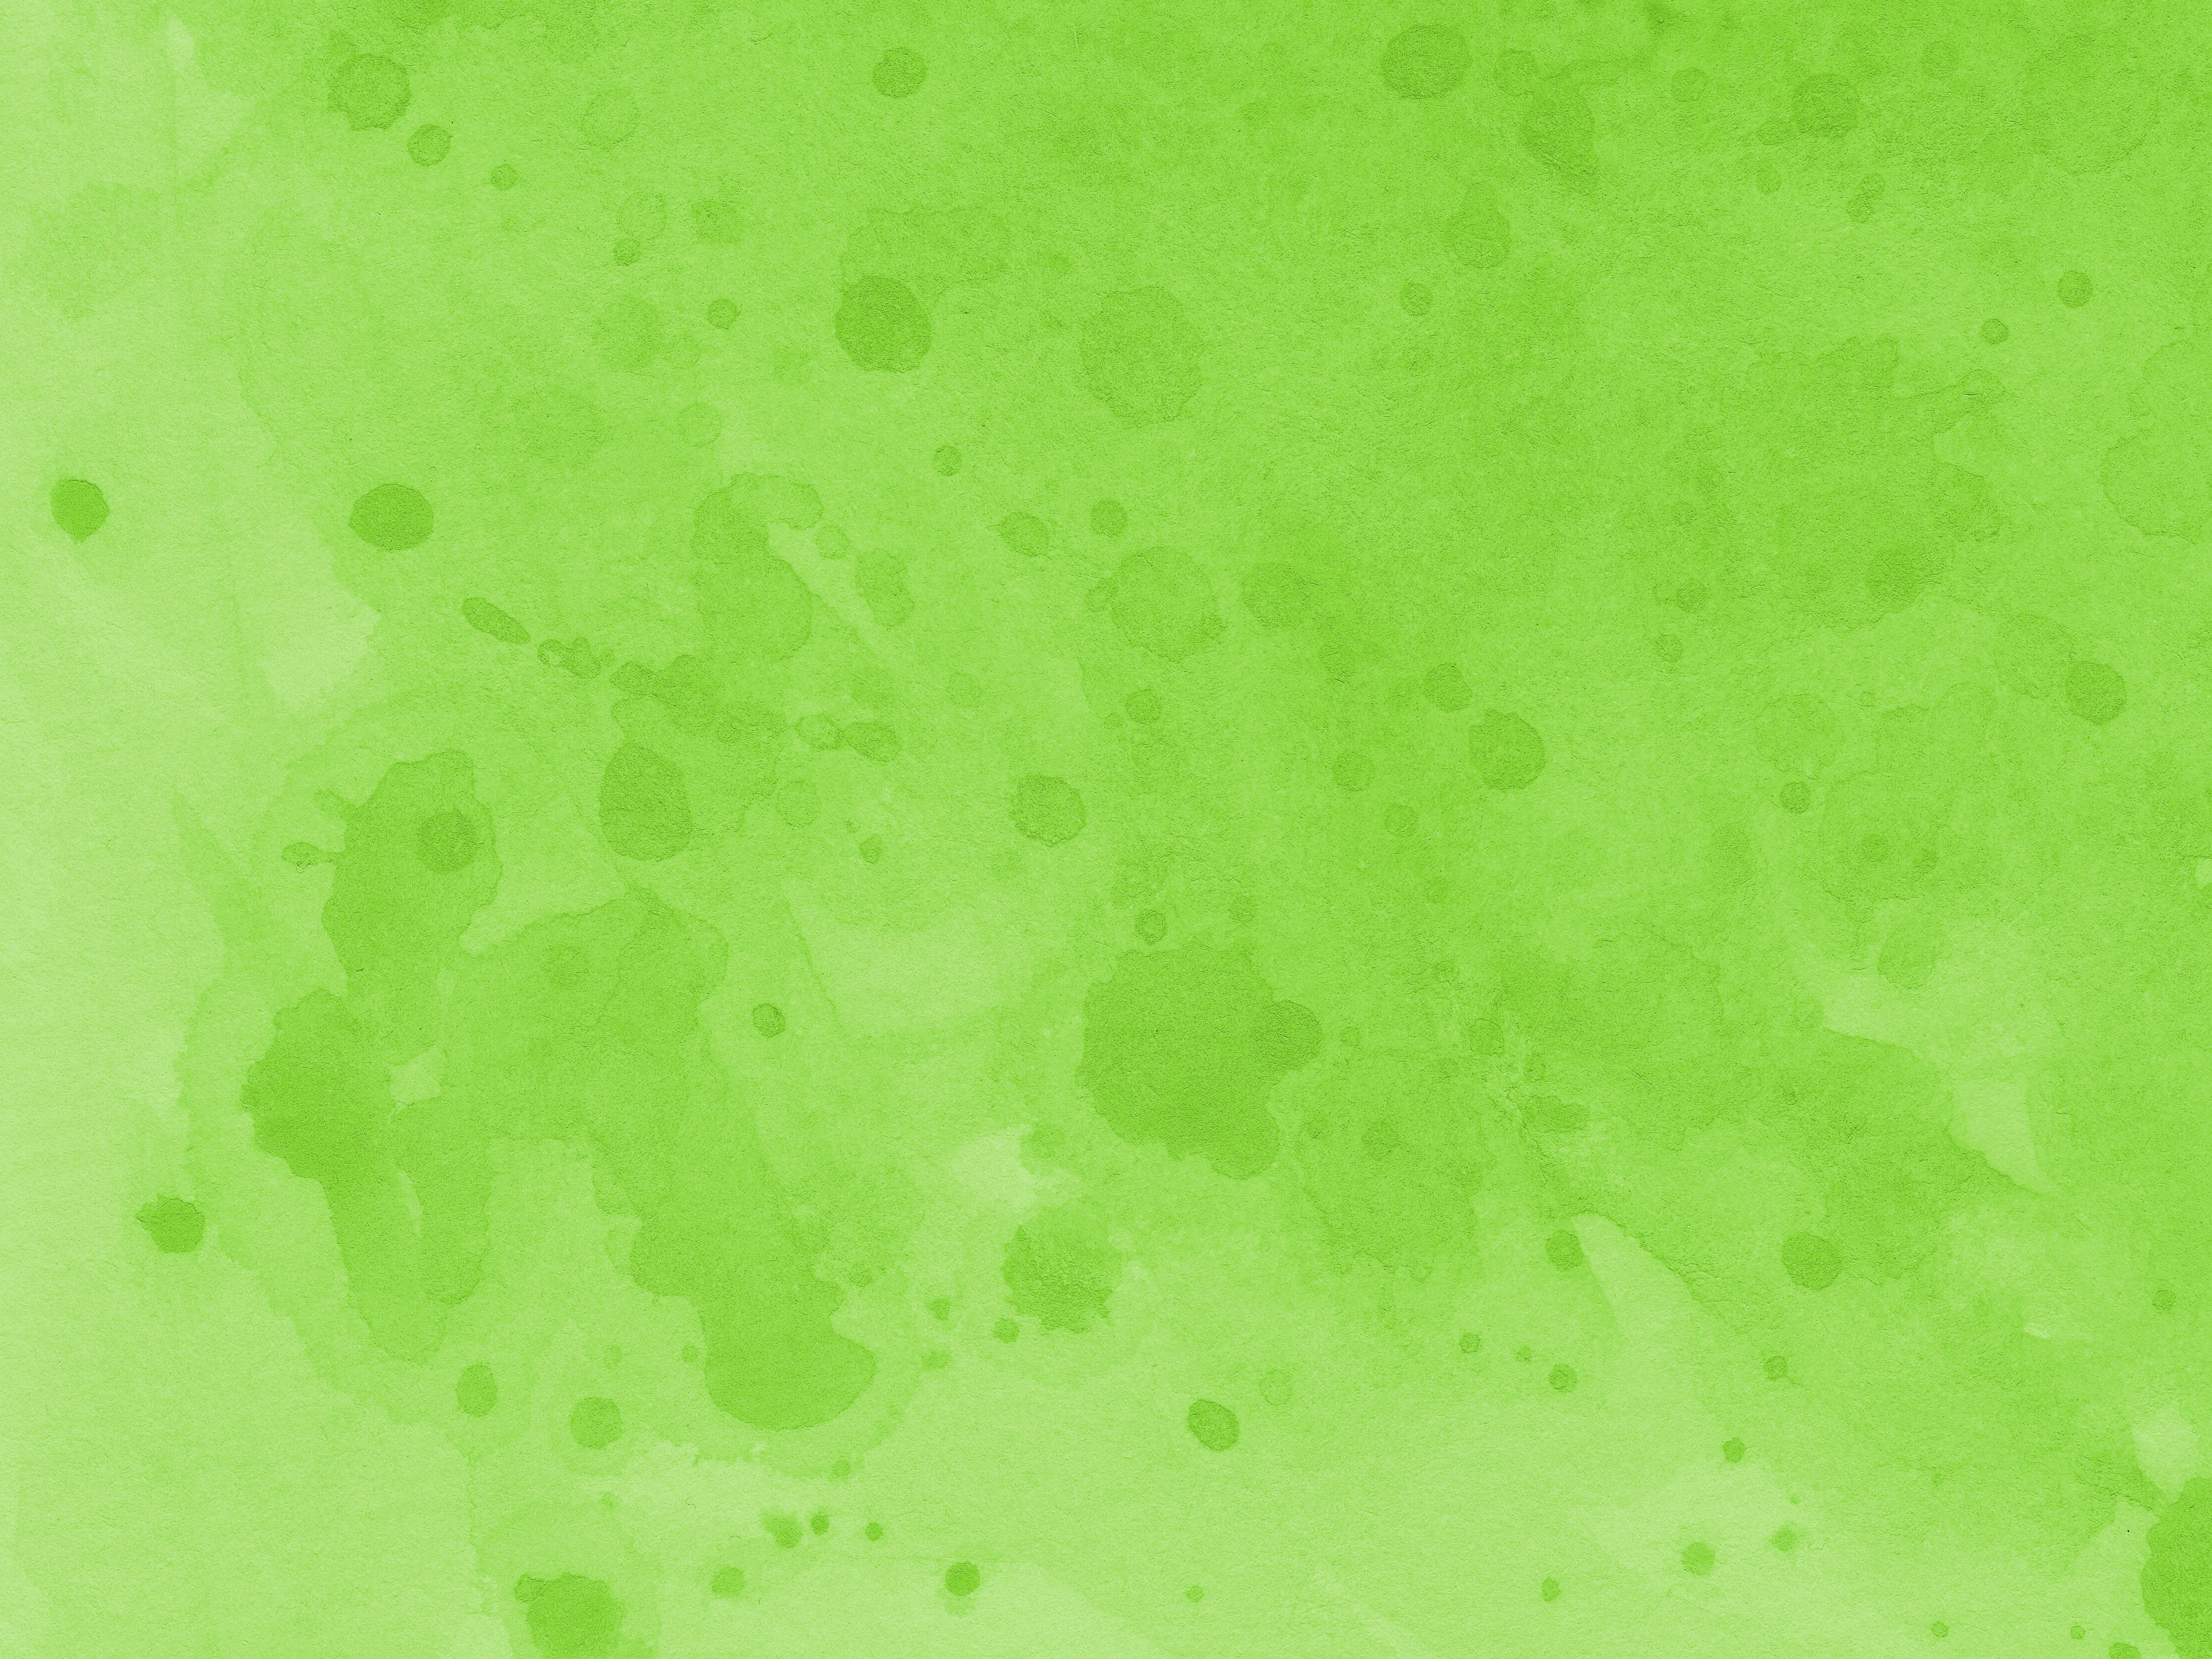 4 Light Green Watercolor Background Jpg Onlygfx Com We've gathered more than 3 million images uploaded by our users and sorted them by the most popular ones. 4 light green watercolor background